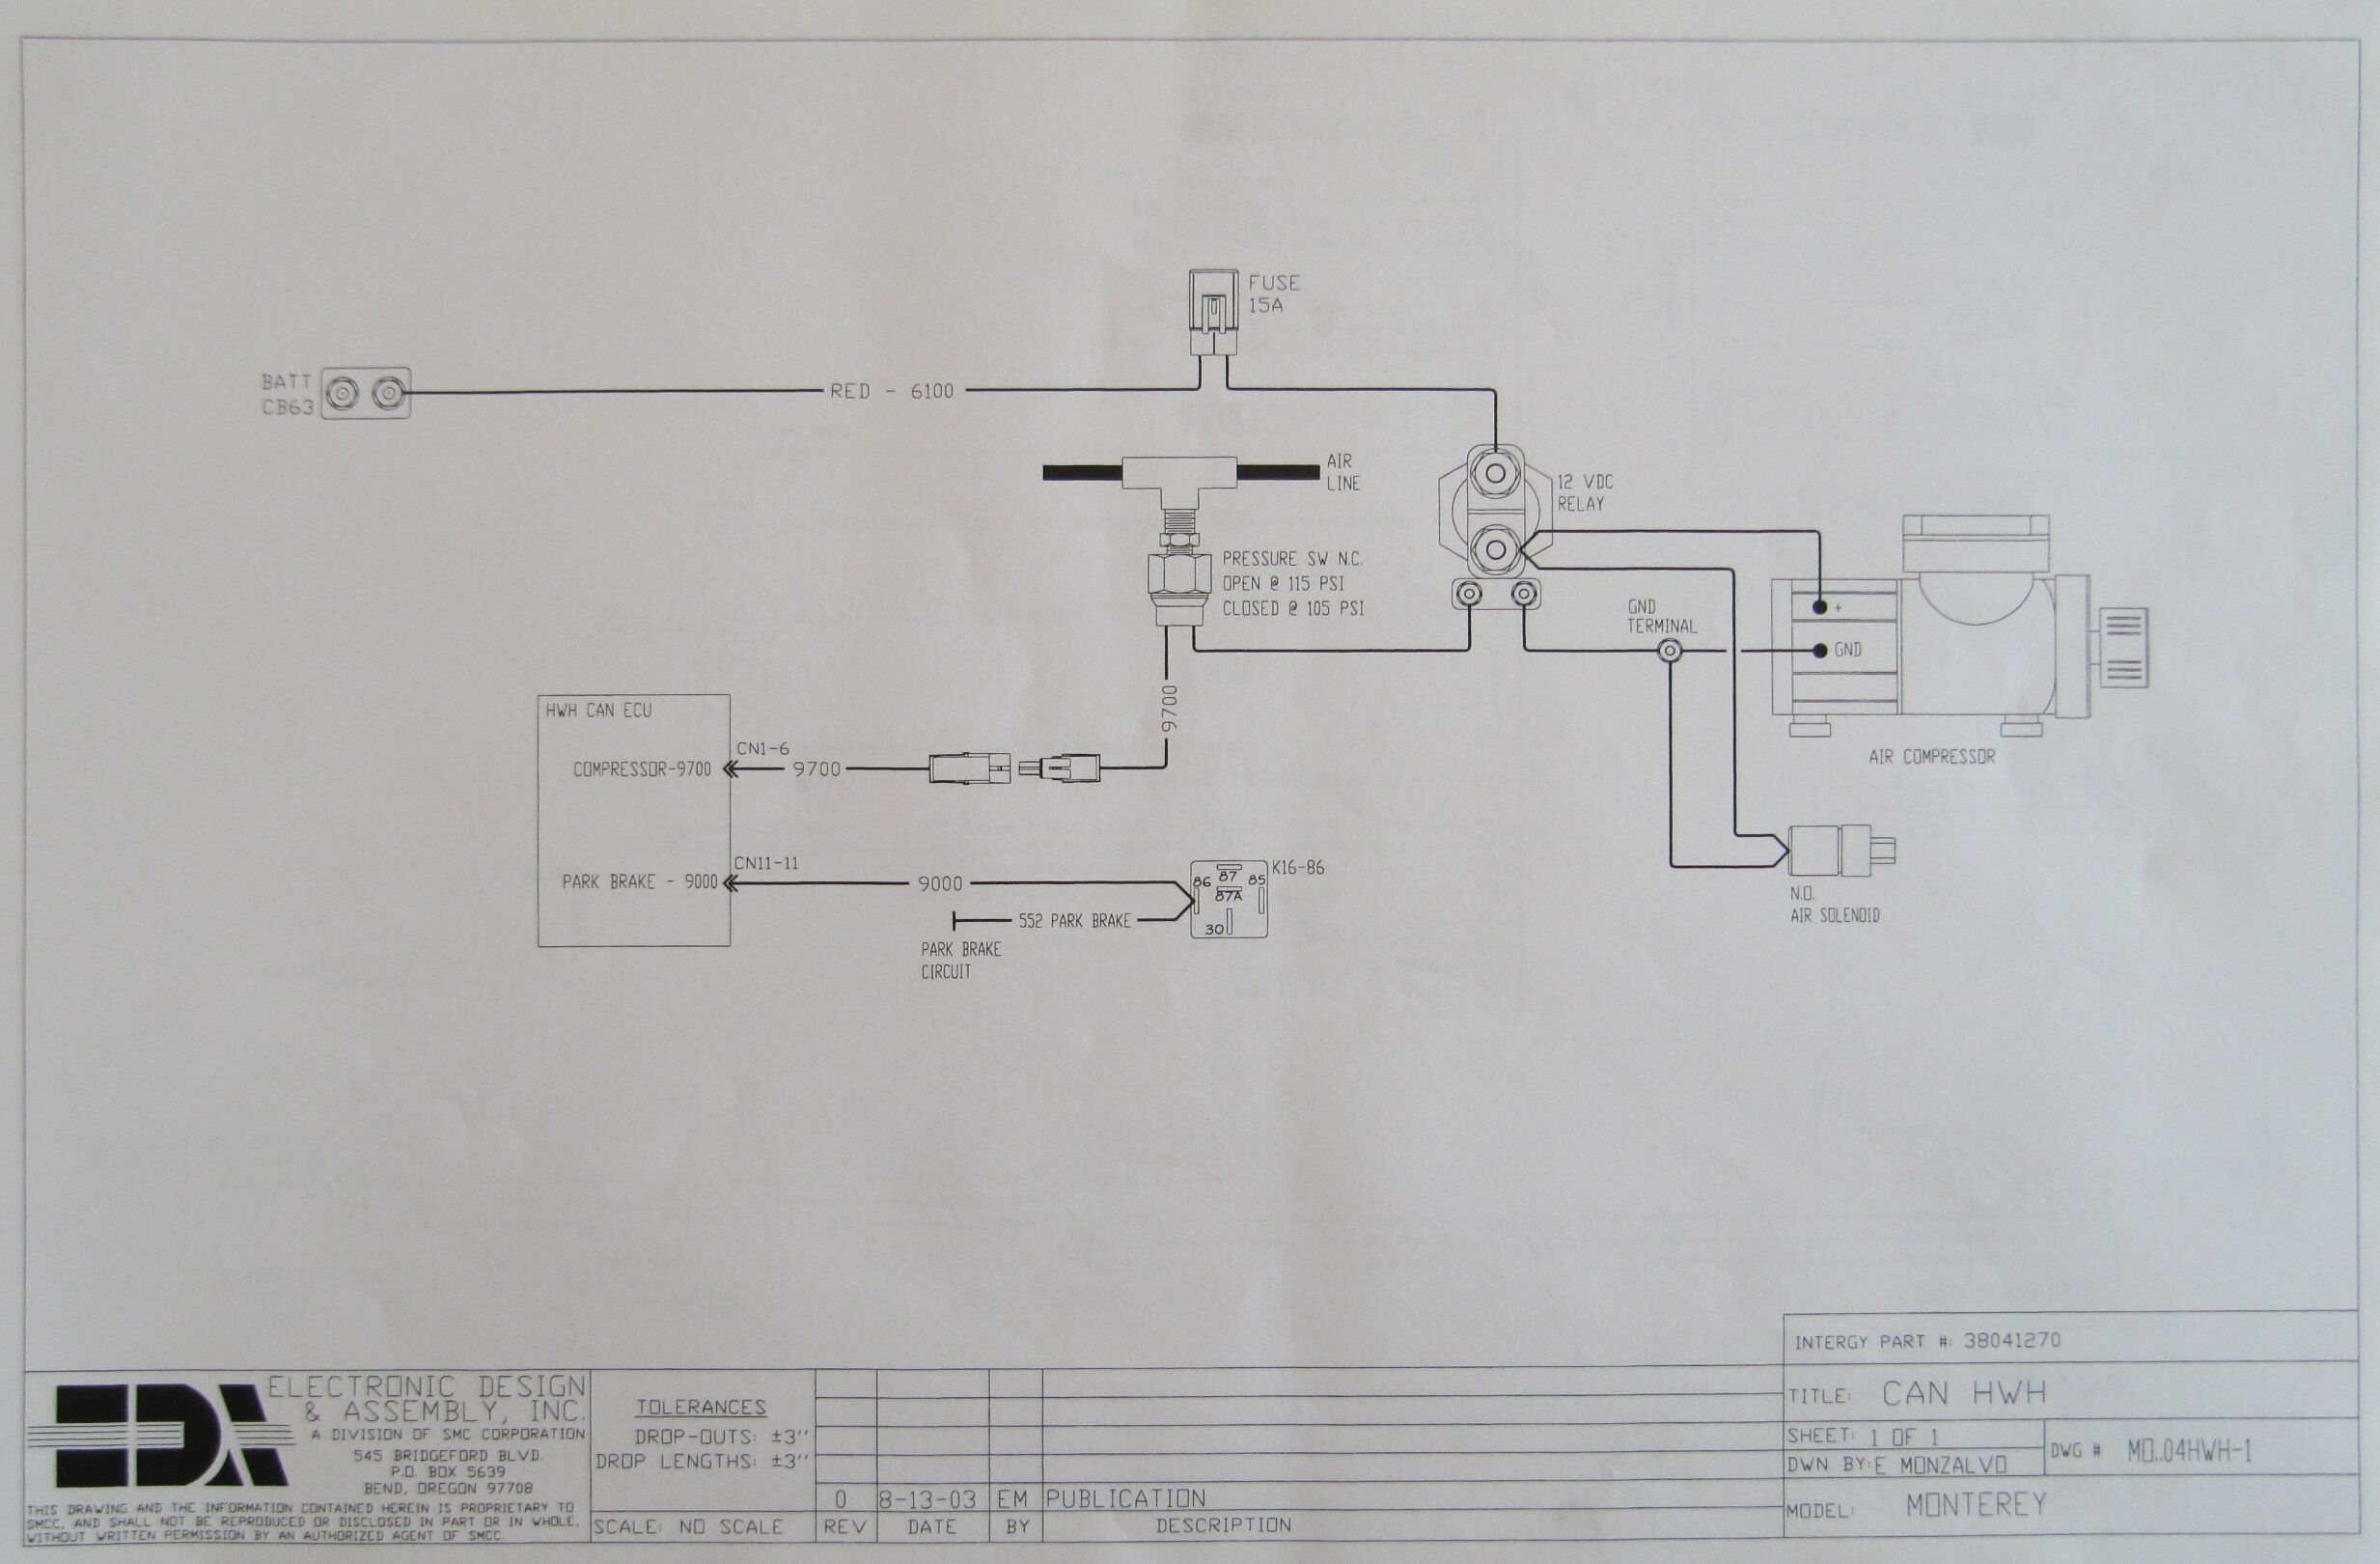 Spartan Chassis Motorhome Wiring Diagrams - Diagram For Wiring A 120v Plug  lovewirings3.au-delice-limousin.fr | Spartan Motorhome Chis Wiring Diagram |  | Bege Wiring Diagram Full Edition